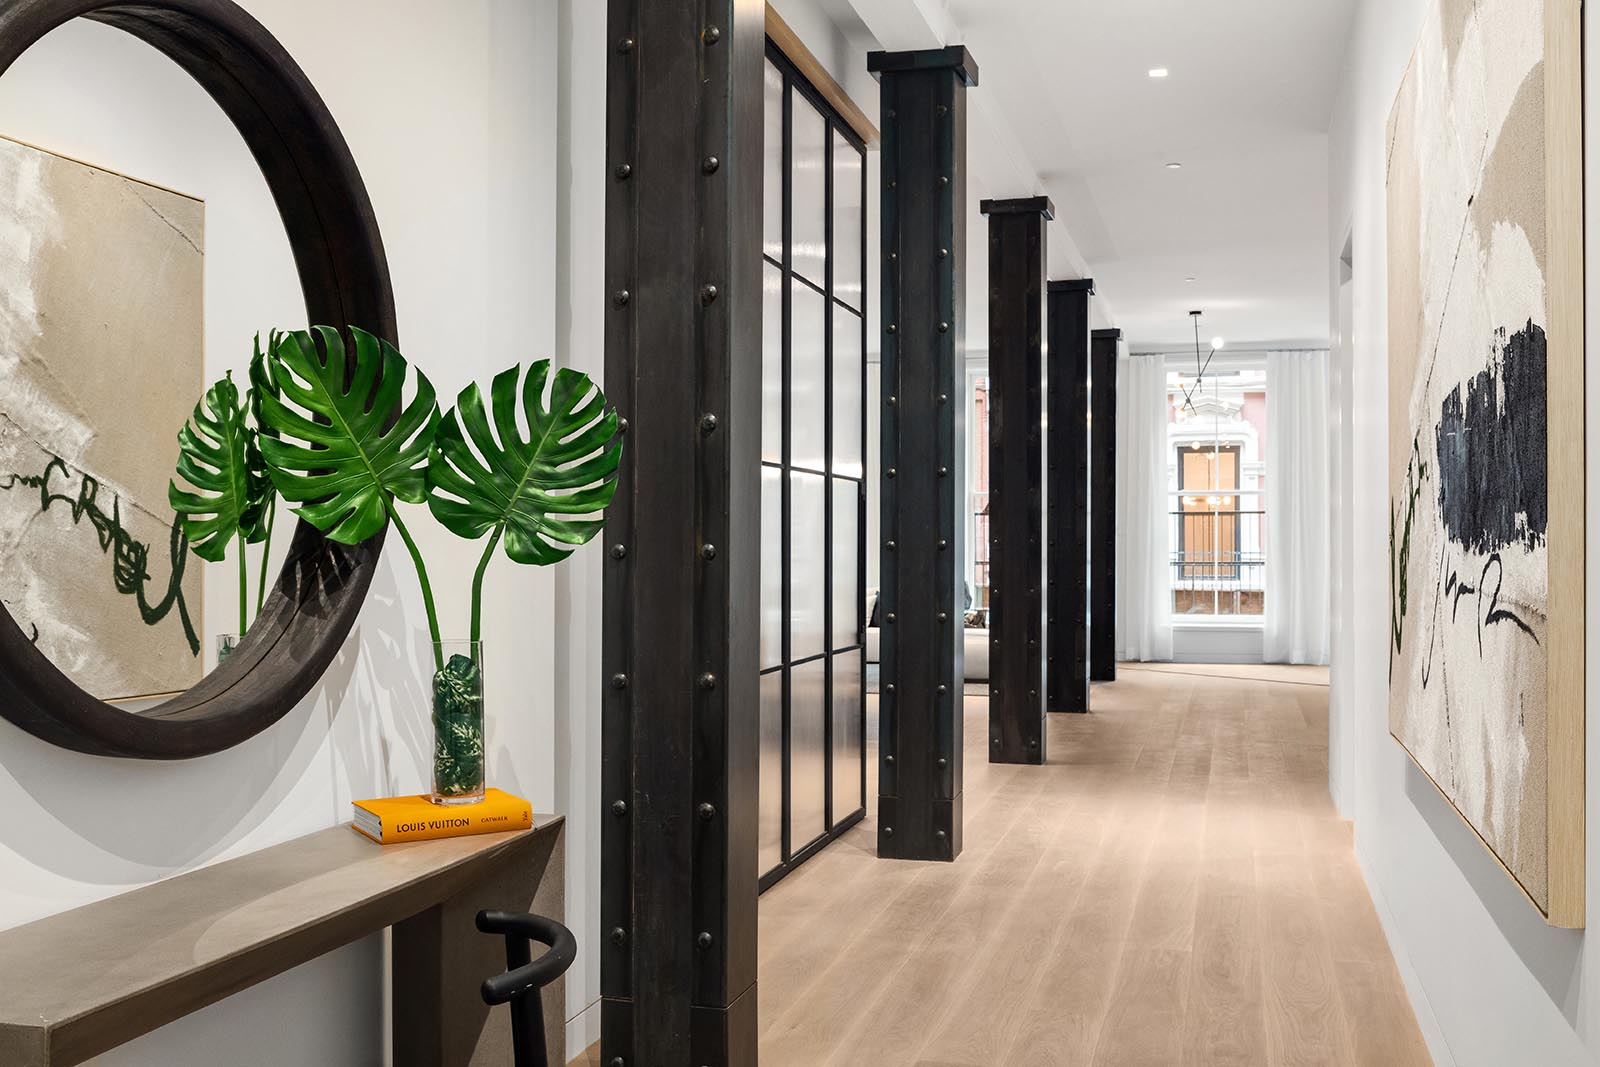 A wide hallway that showcases the steel beams, separates the living area from the sleeping quarters in this modern home.